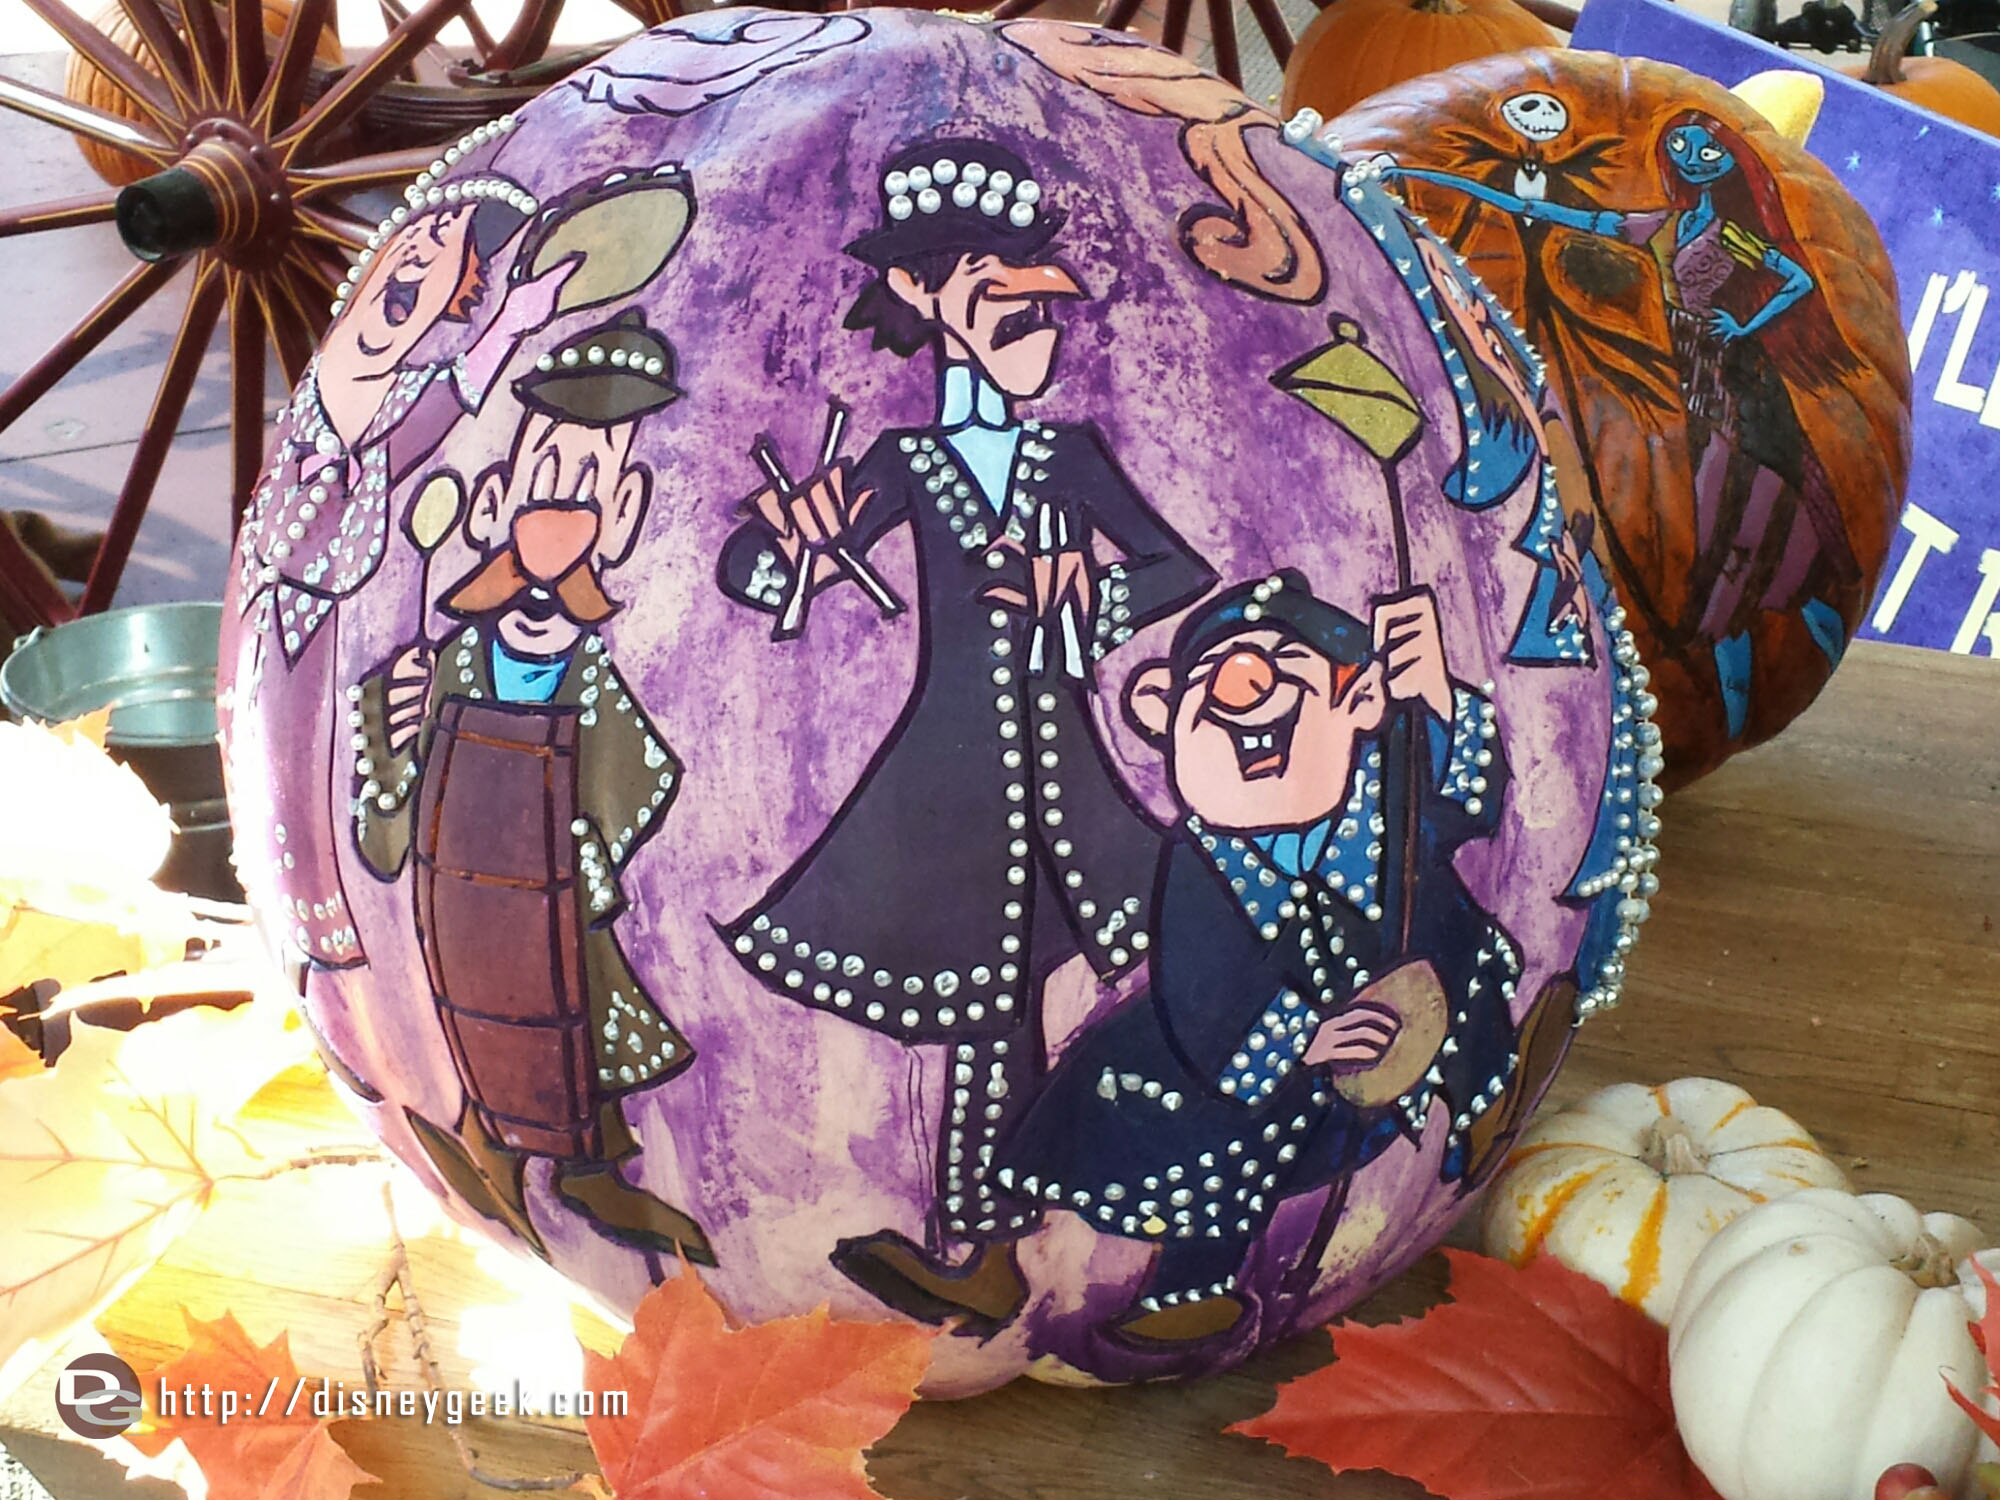 A Pearly Band inspired pumpkin #HalloweenTime #Disneyland